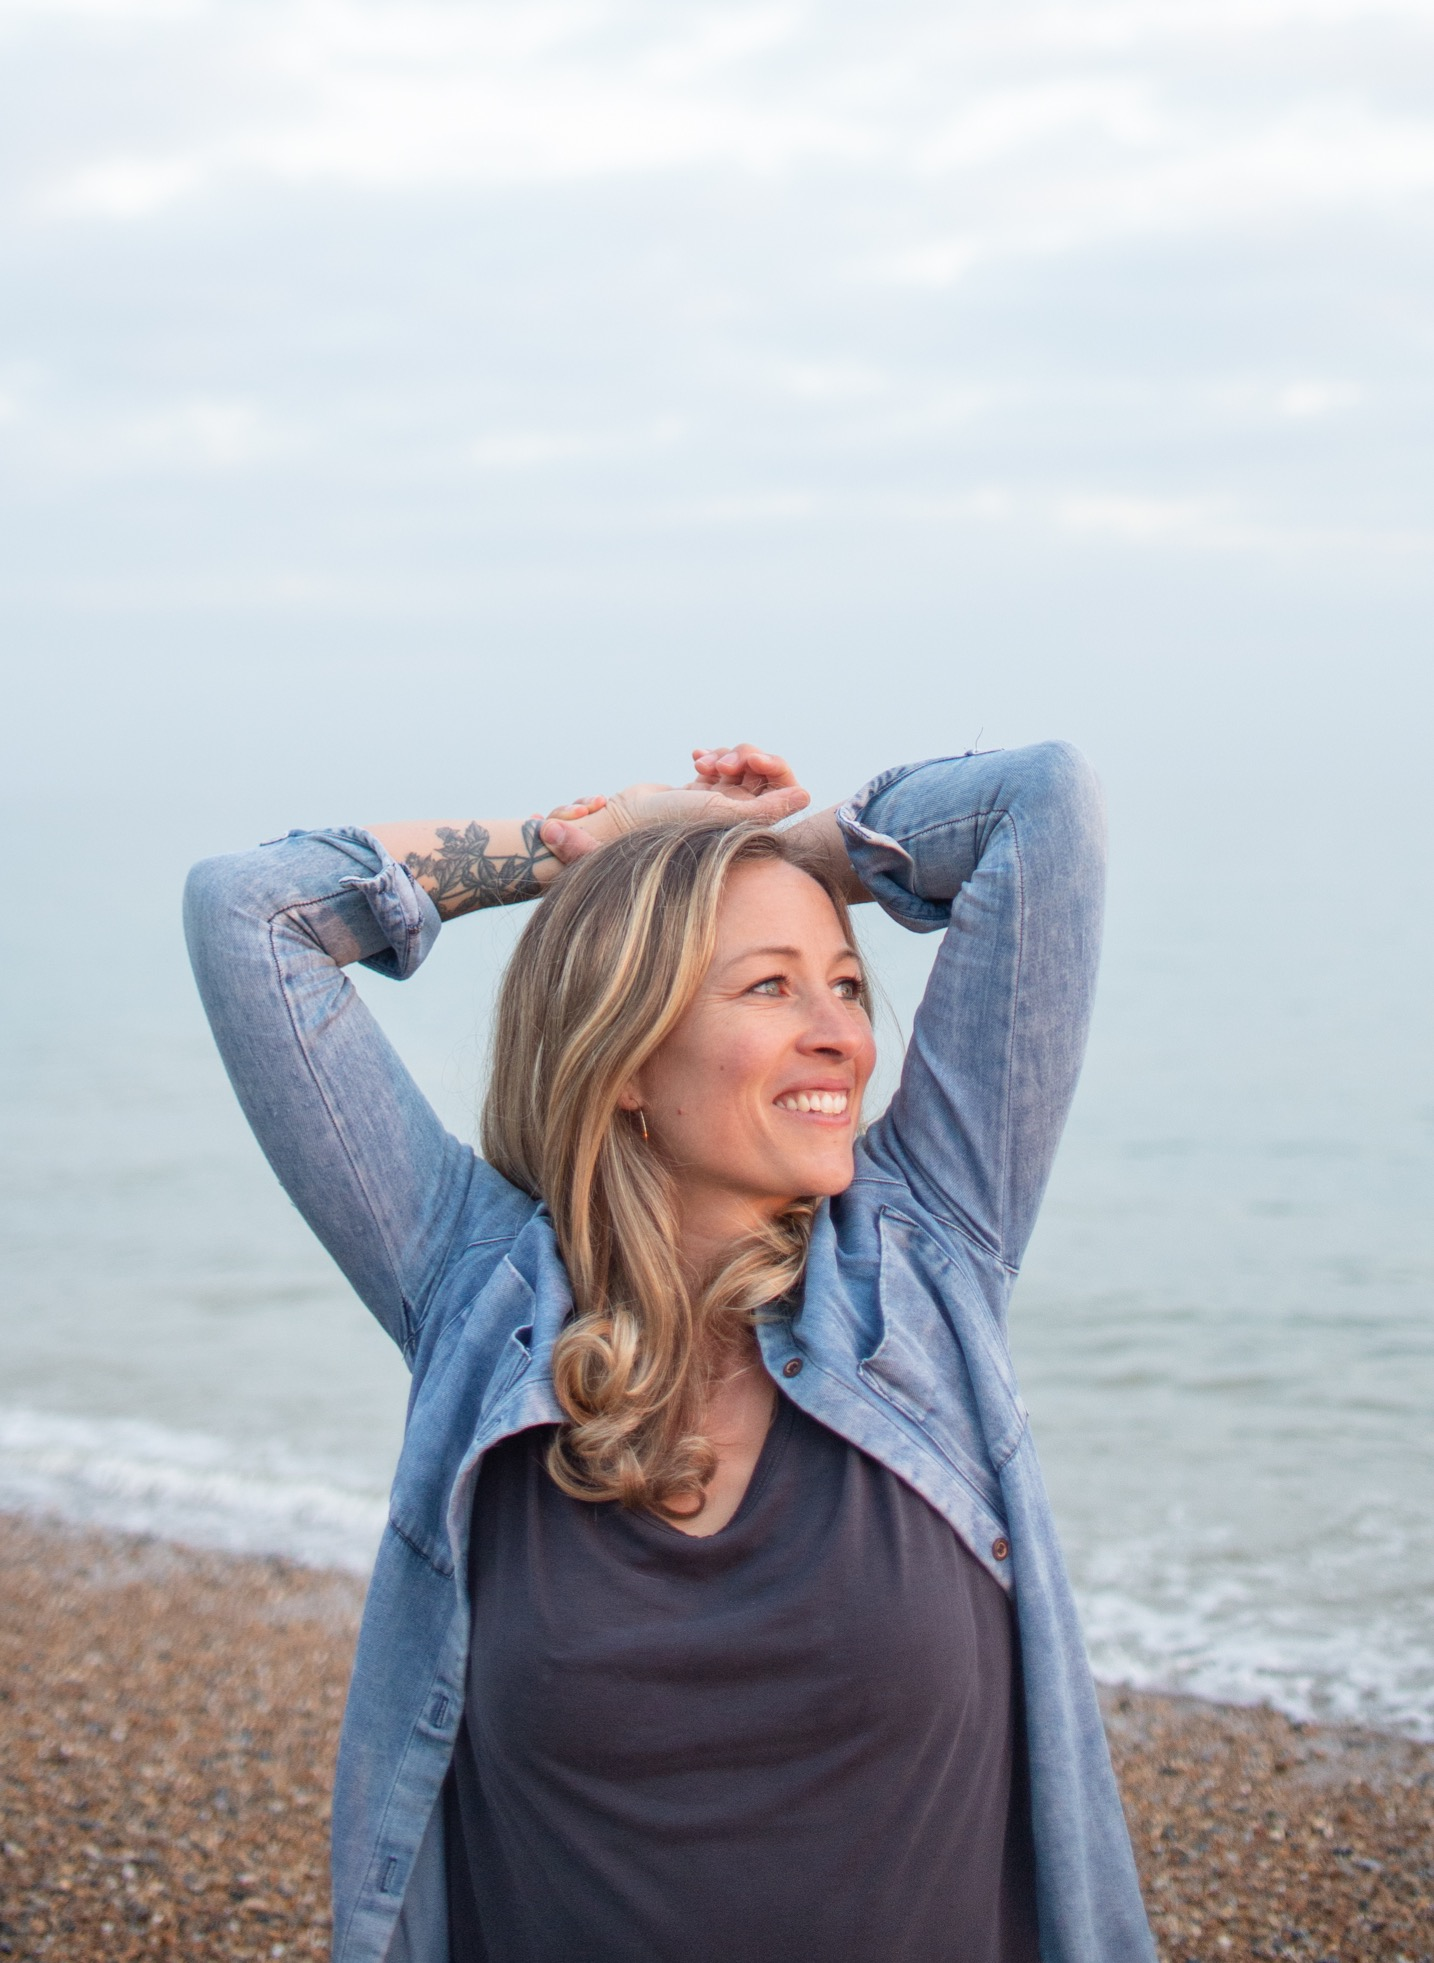 Yoga teacher Brea smiling with hands on head in front of sea